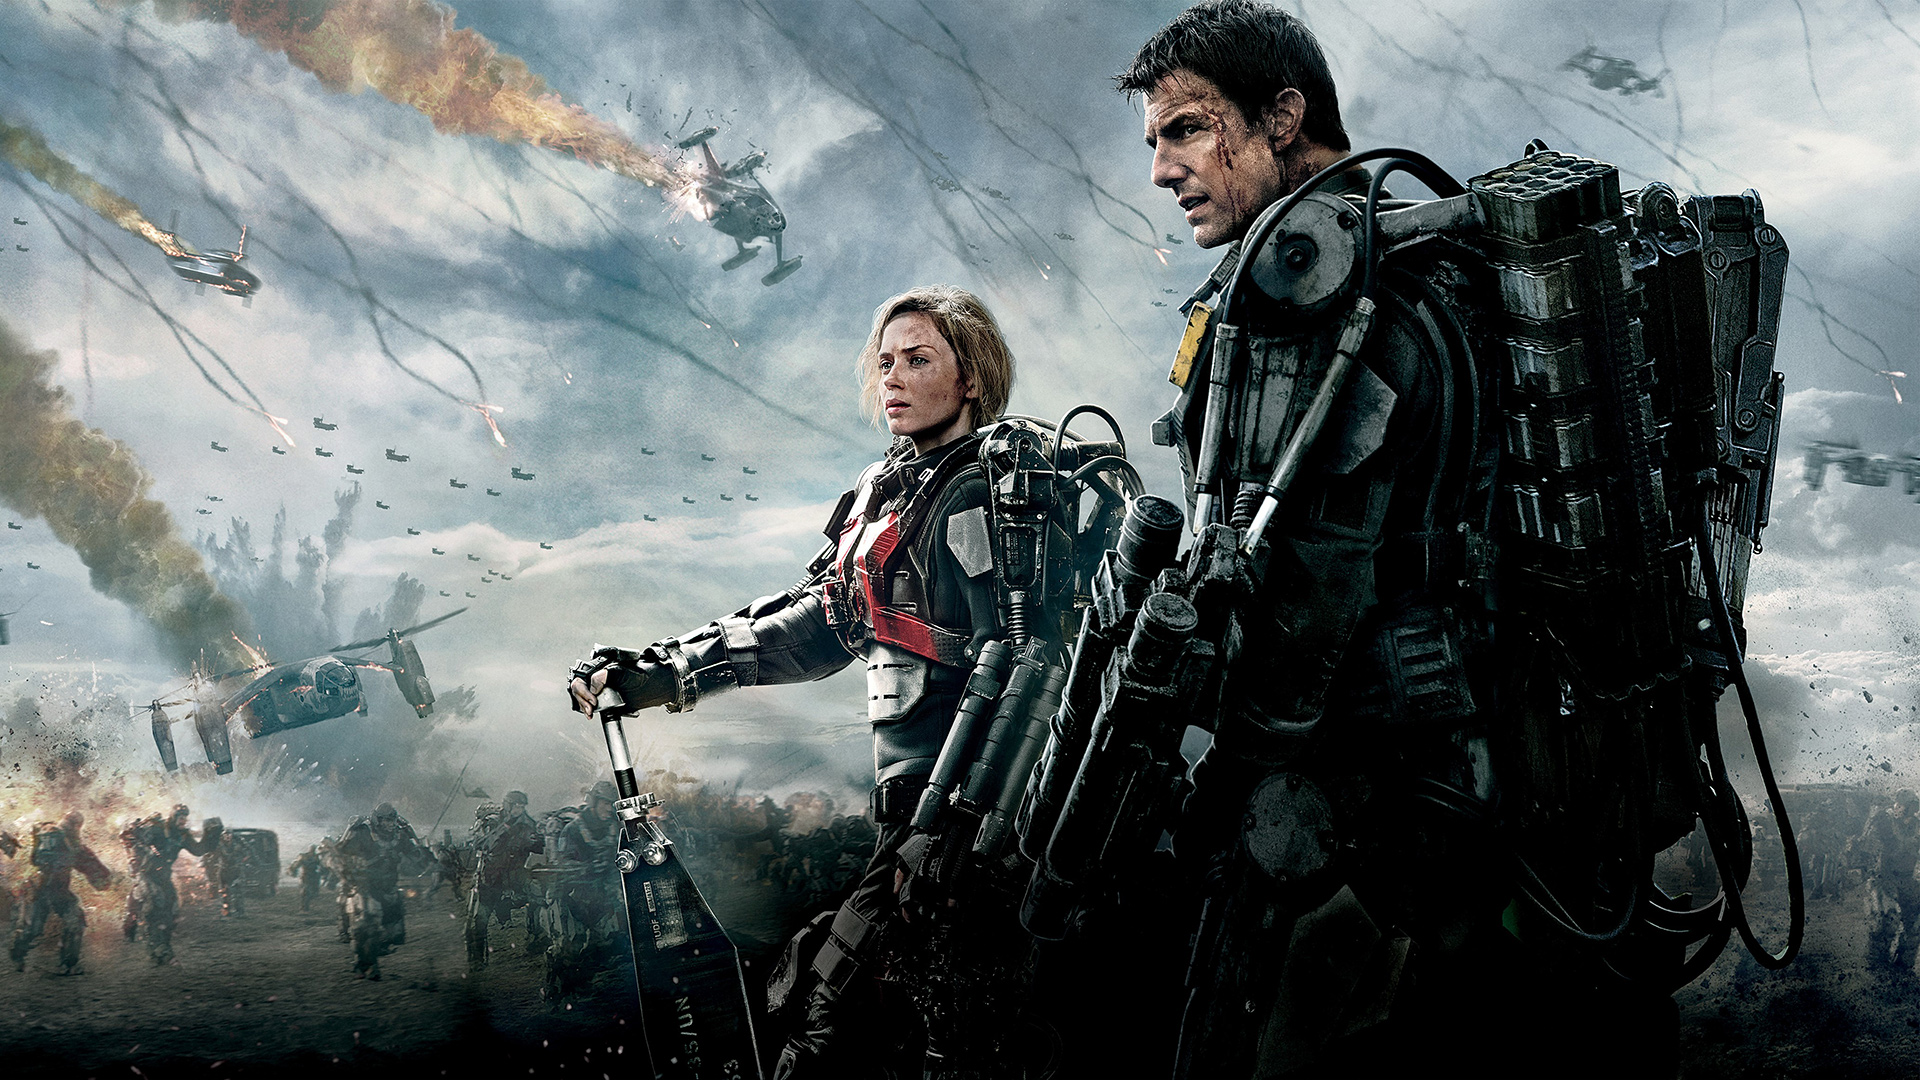 Edge Of Tomorrow Full Movie In Hindi Dubbed Watch Online